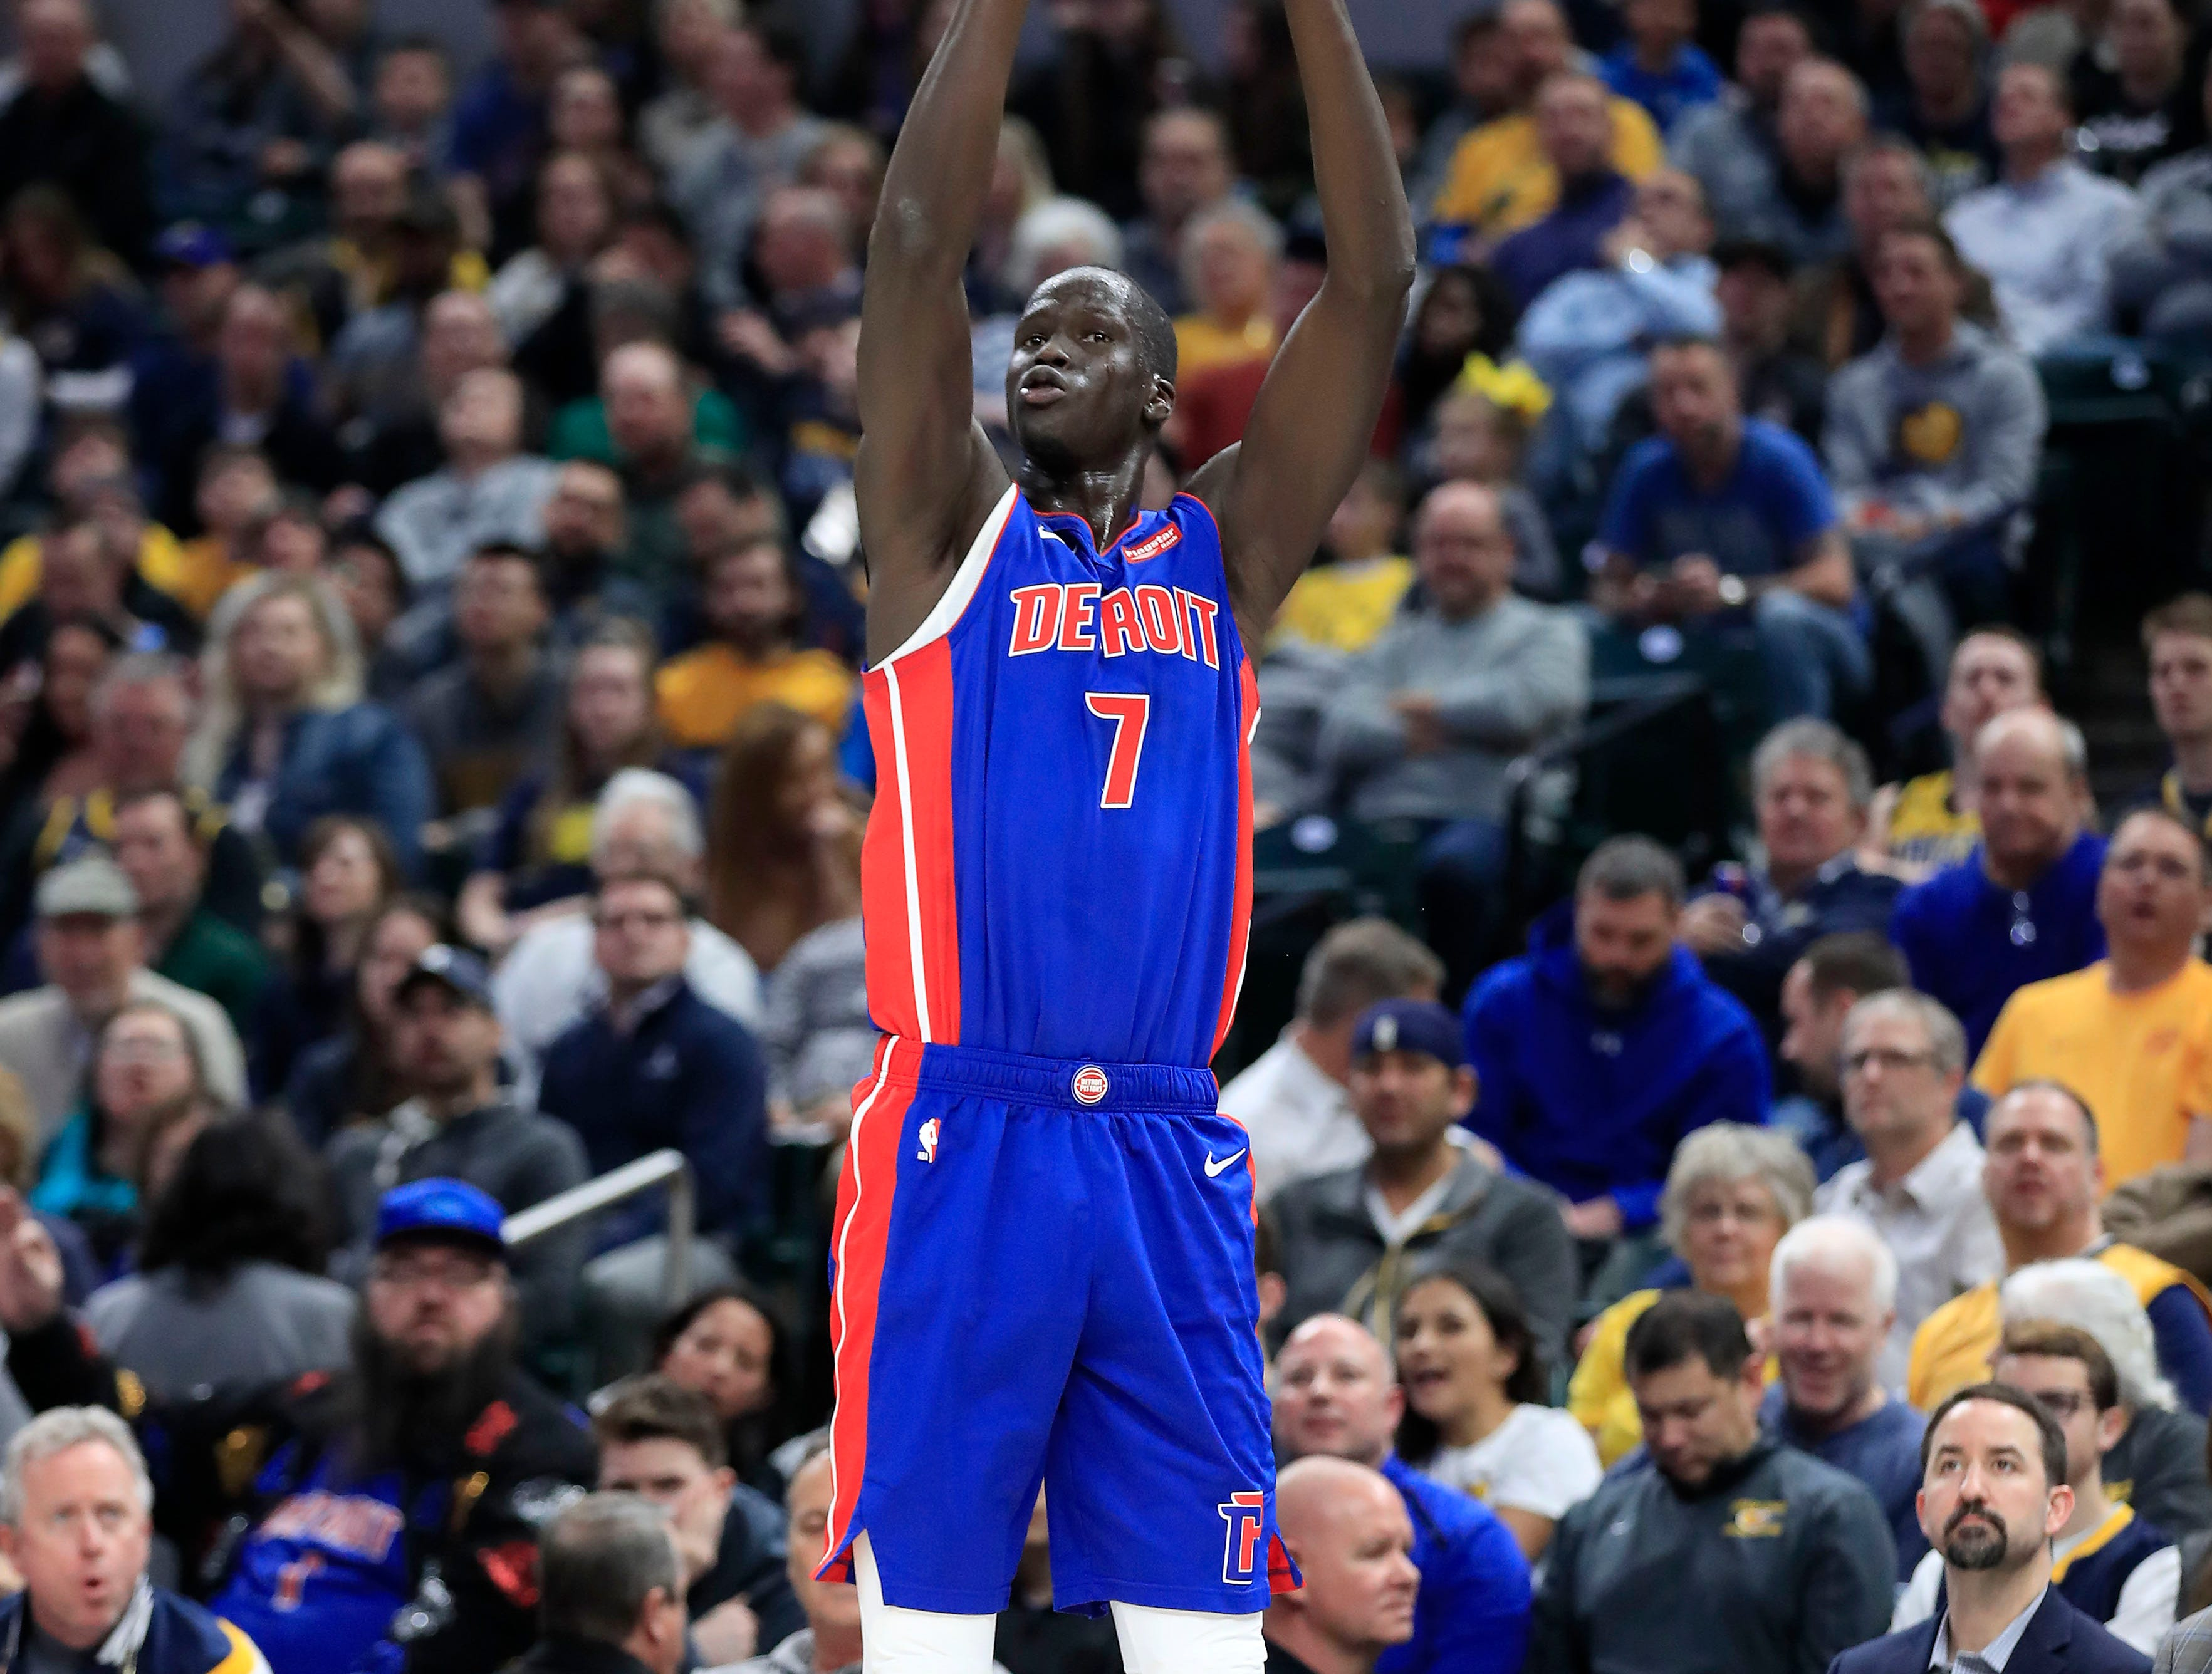 Detroit Pistons' Thon Maker shoots against the Indiana Pacers at Bankers Life Fieldhouse on April 1, 2019 in Indianapolis.